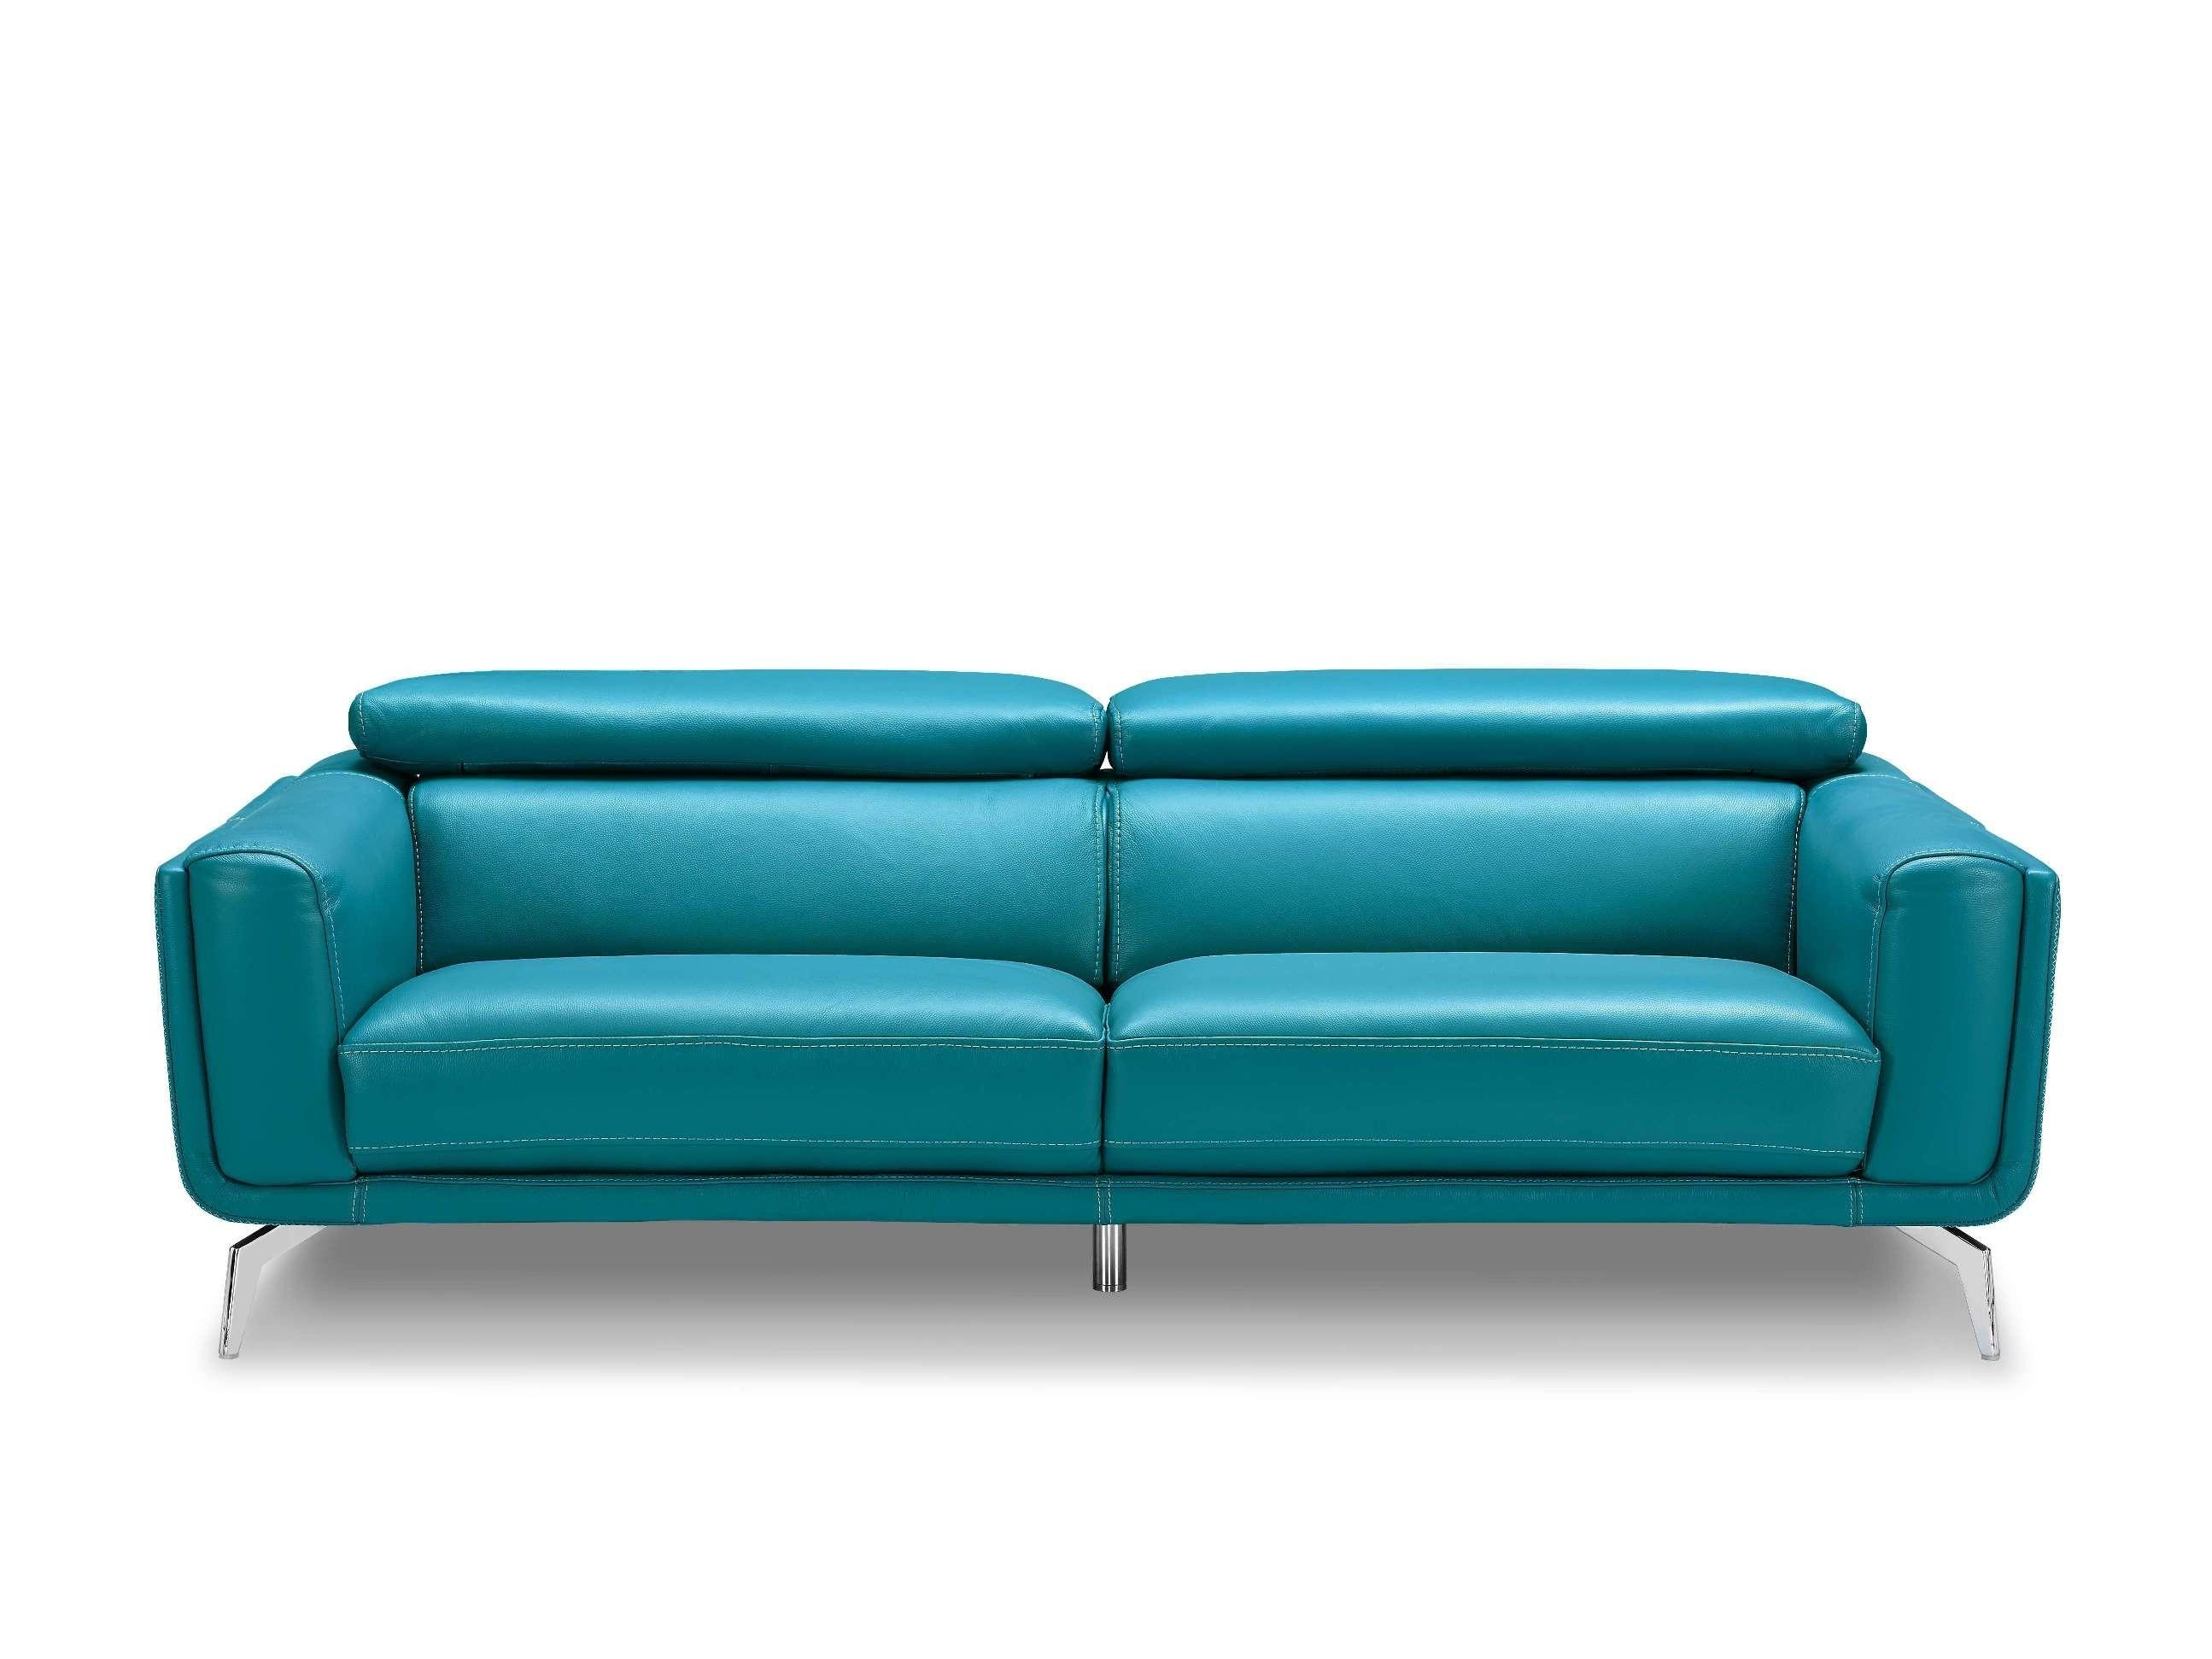 Sofa With Chrome Legs Dazzling Modern Black Sofas Tufted Elijah In Sofas With Chrome Legs (Image 15 of 20)